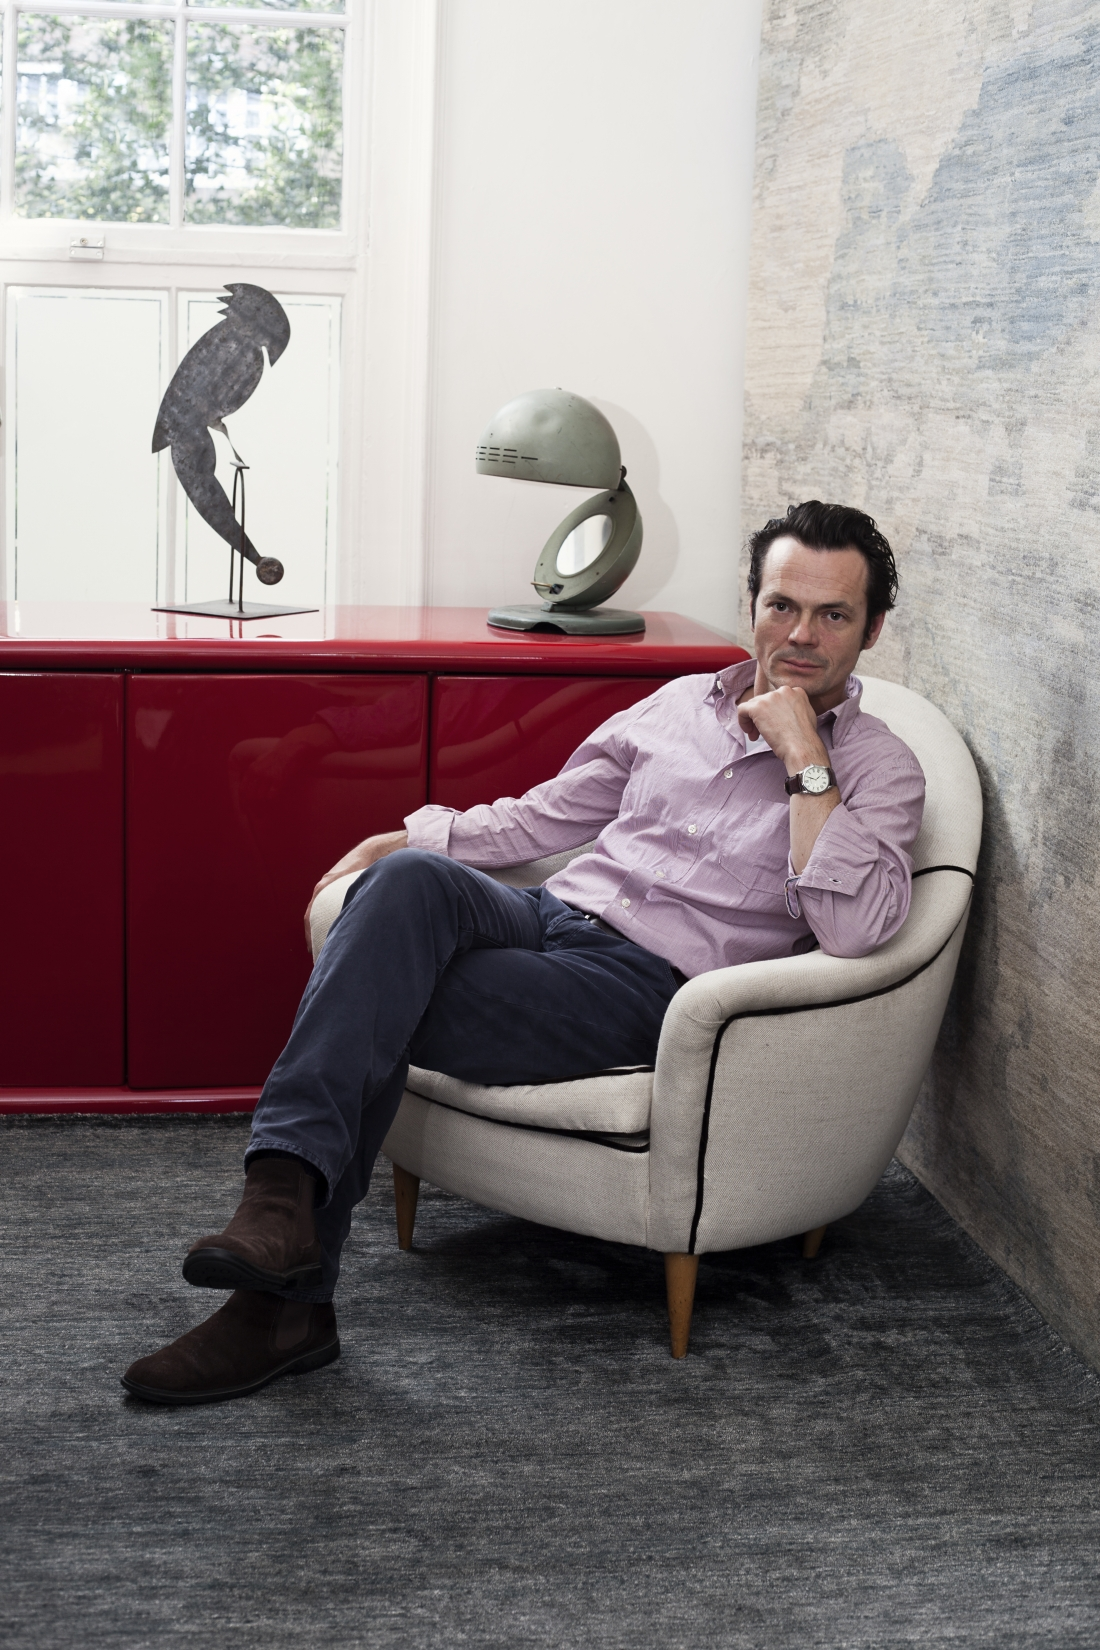 Luke Irwin On Luxury Rug Design The Creative Process And The Benefit Of Collaboration Material Source